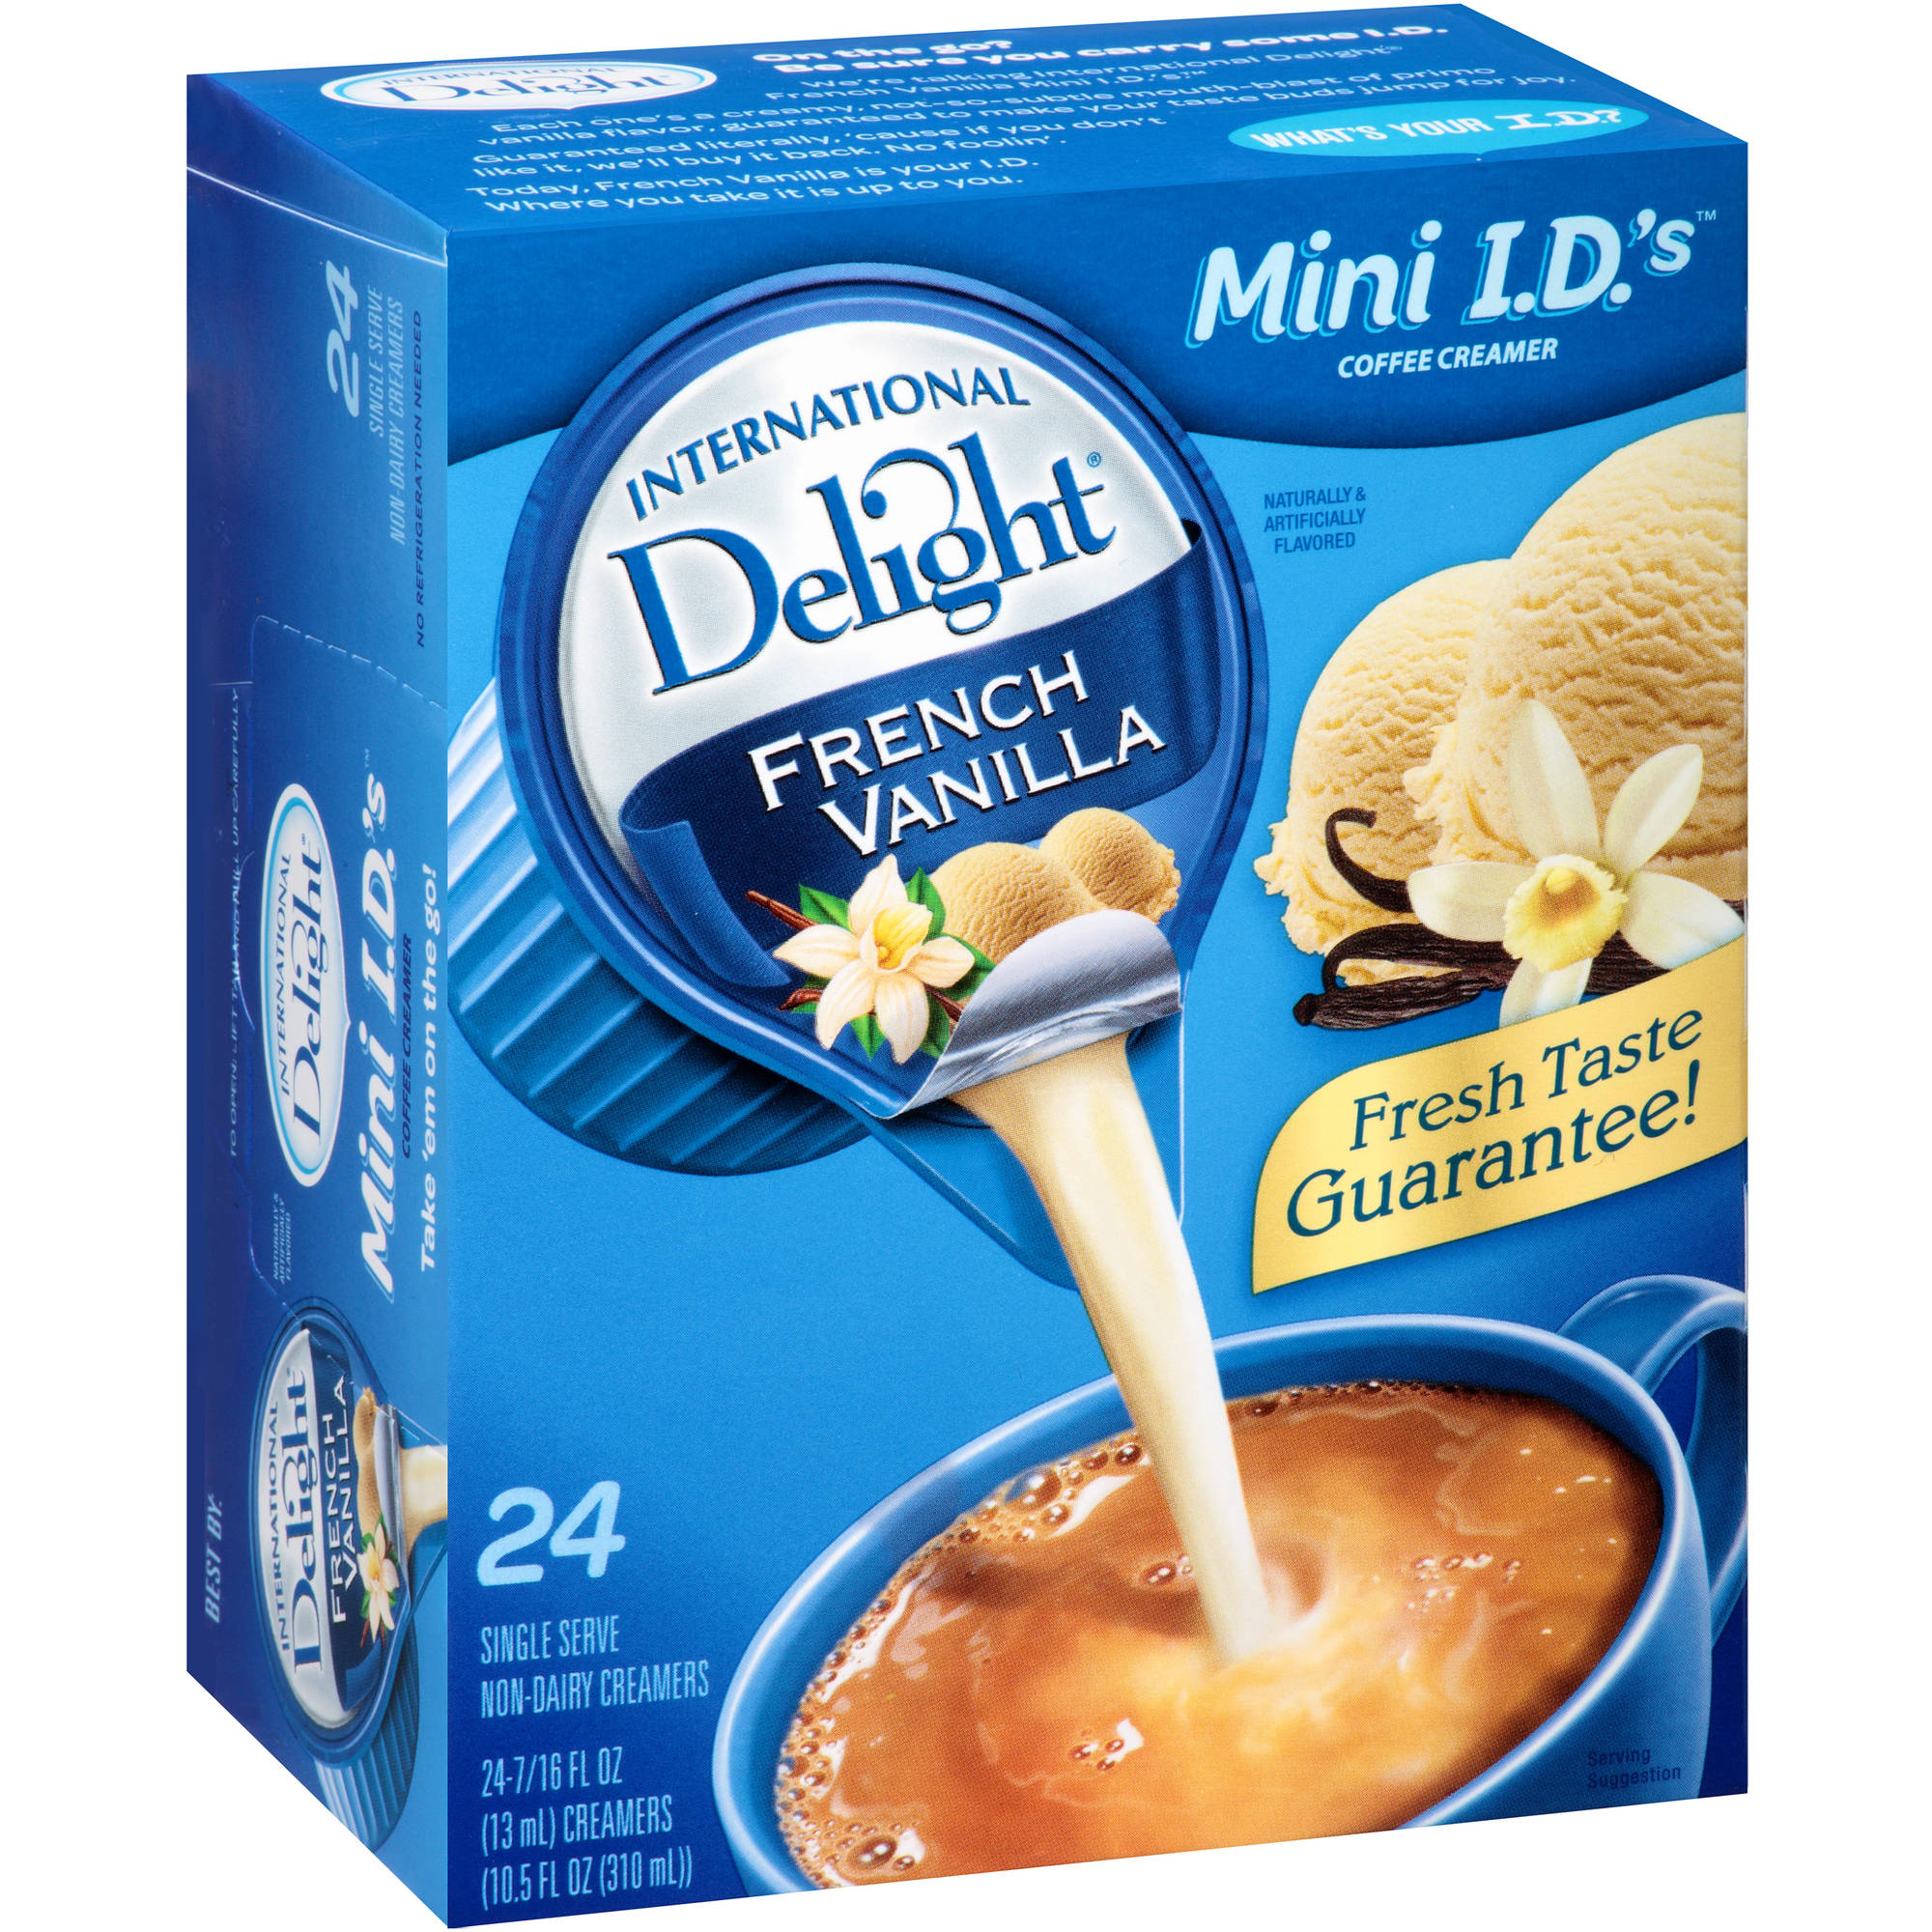 International Delight French Vanilla Coffee Creamer Singles, 24 count